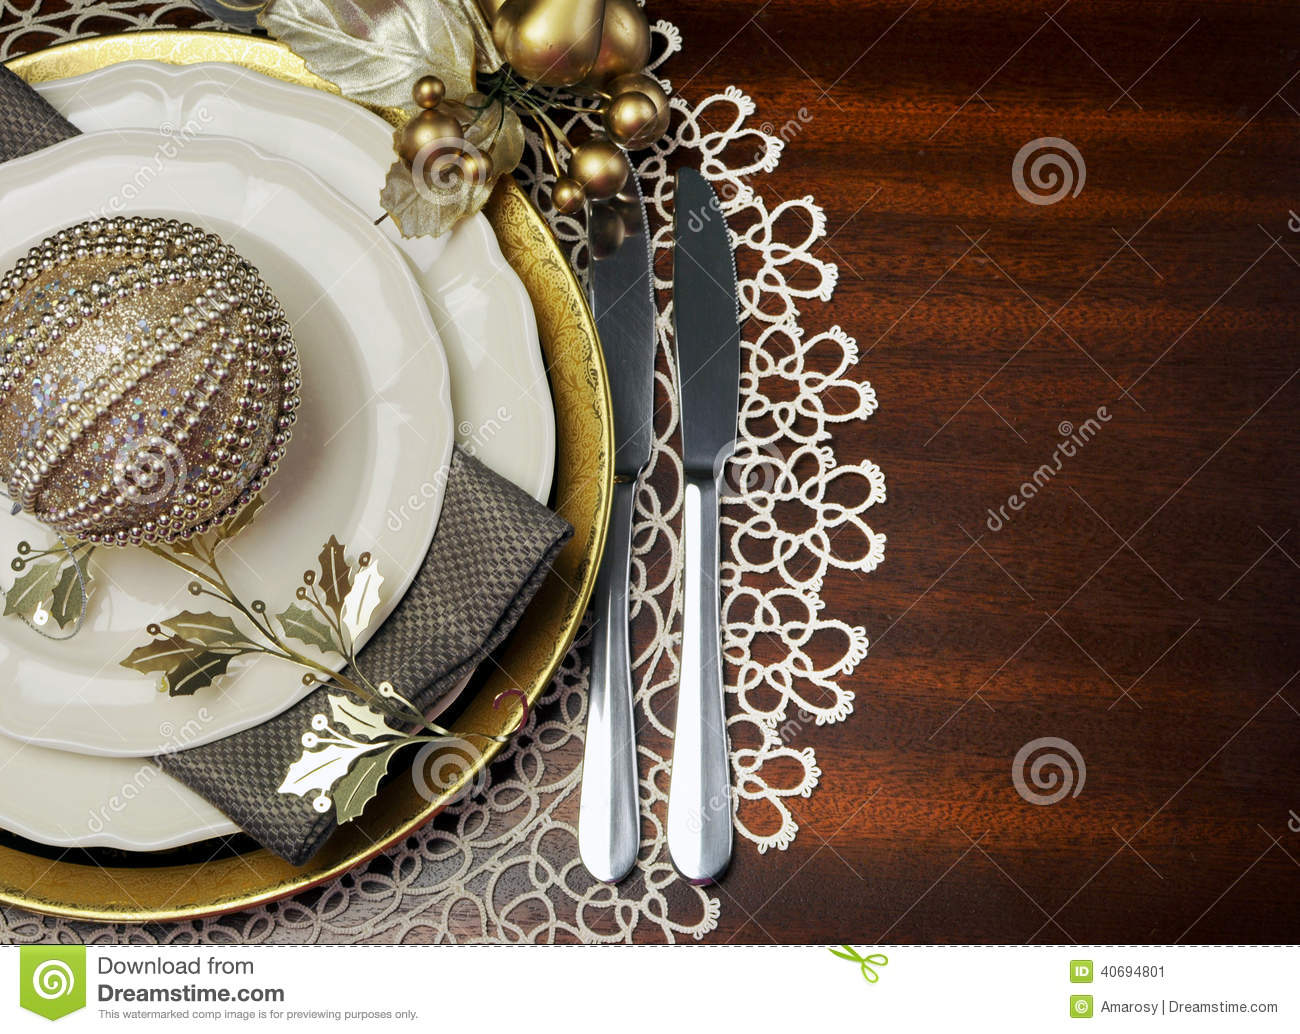 FORMAL DINNER TABLE SETTING Stock Image - Image of course, crockery ...